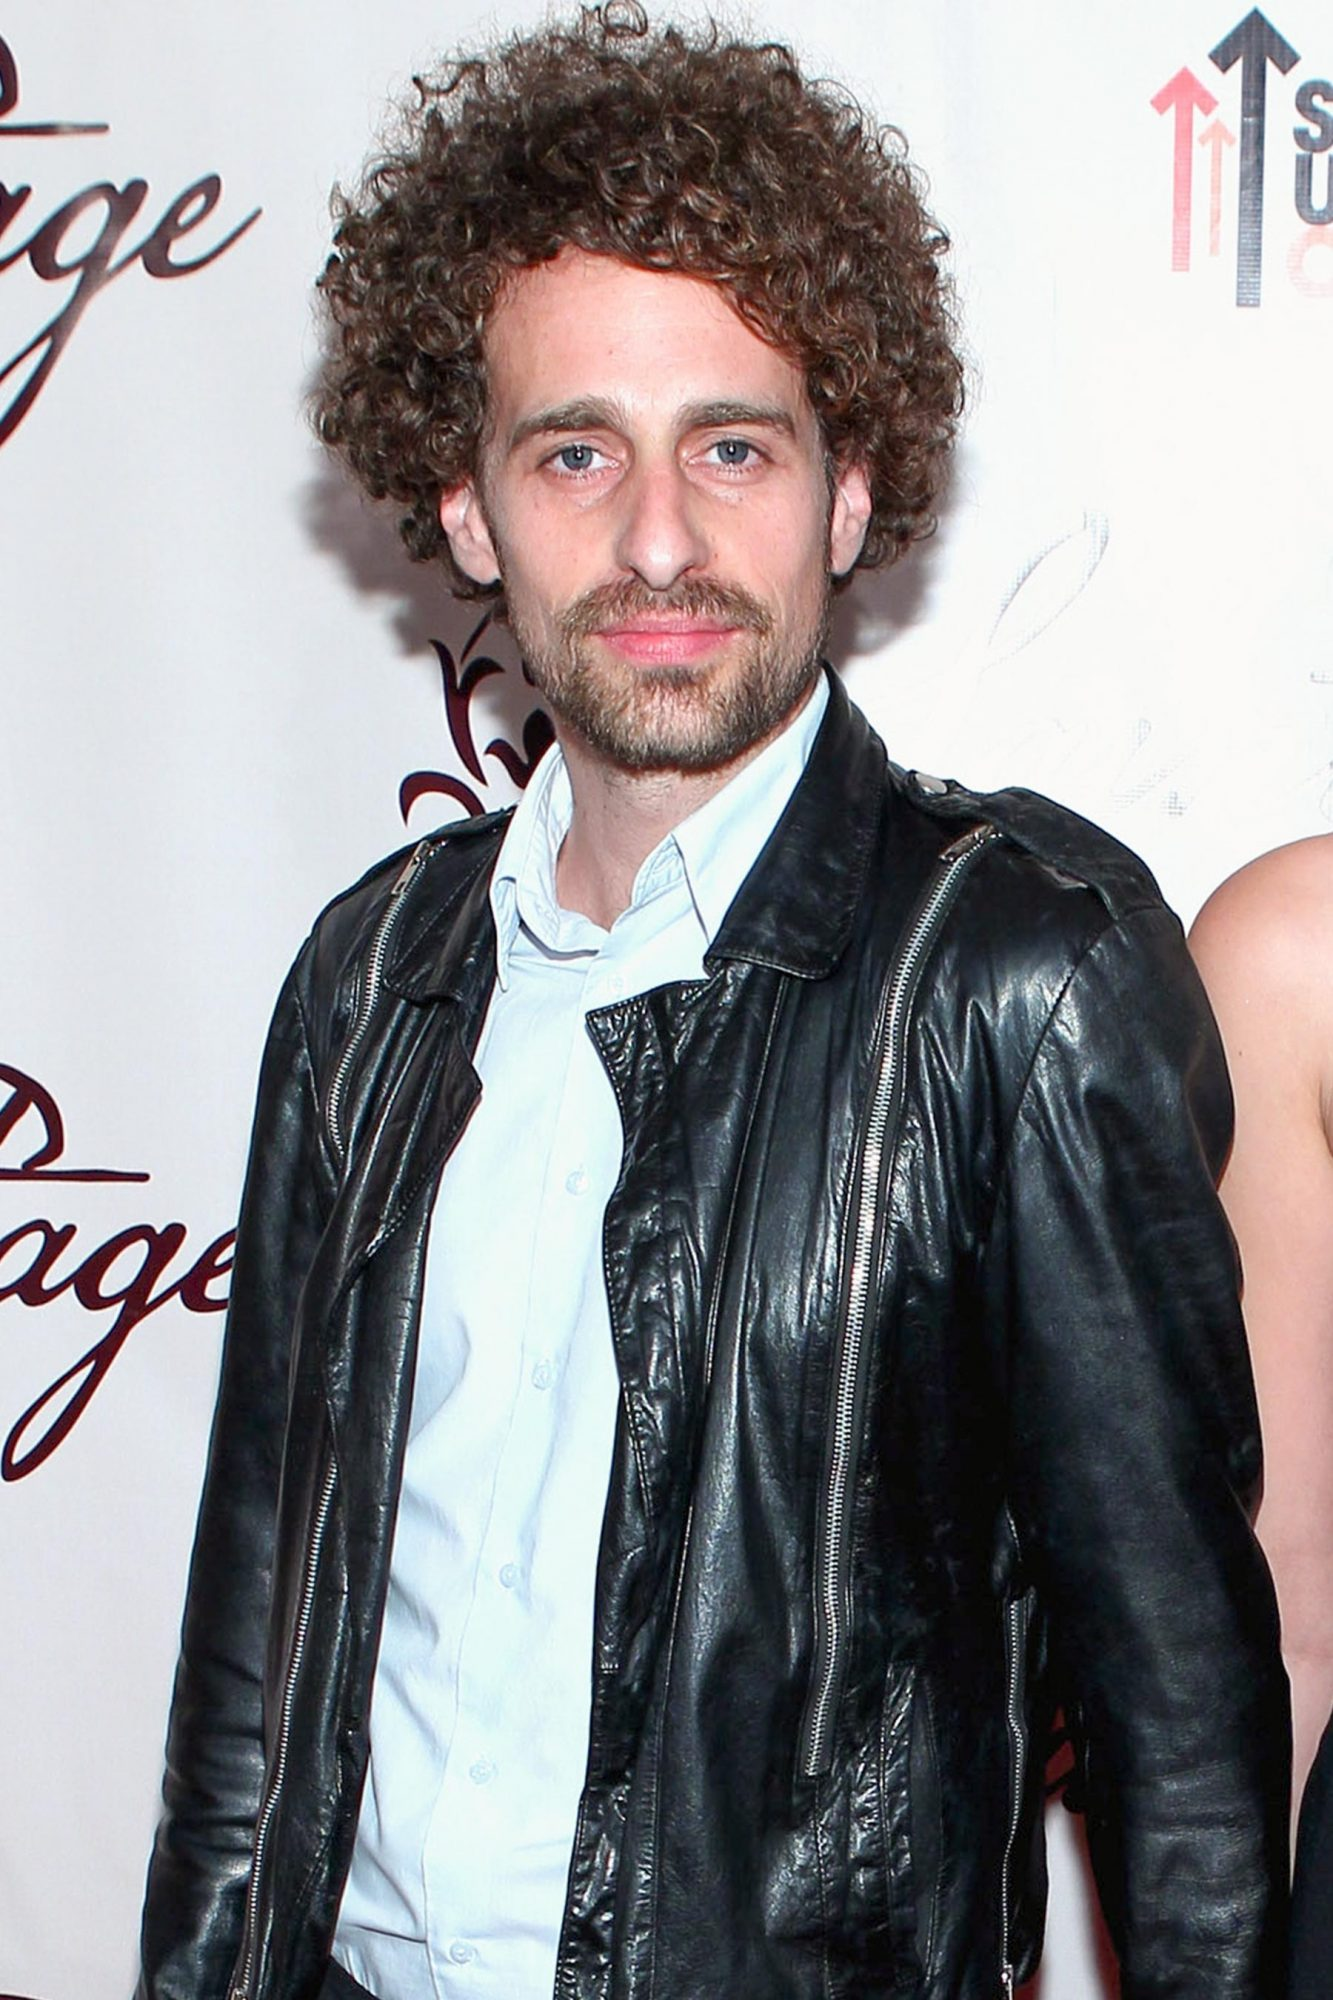 "WEST HOLLYWOOD, CA - MARCH 22: Isaac Kappy (L) arrives at the Saint Vintage ""Love Tour"" held at the Andaz hotel on March 22, 2012 in West Hollywood, California. (Photo by Mark Davis/WireImage)"